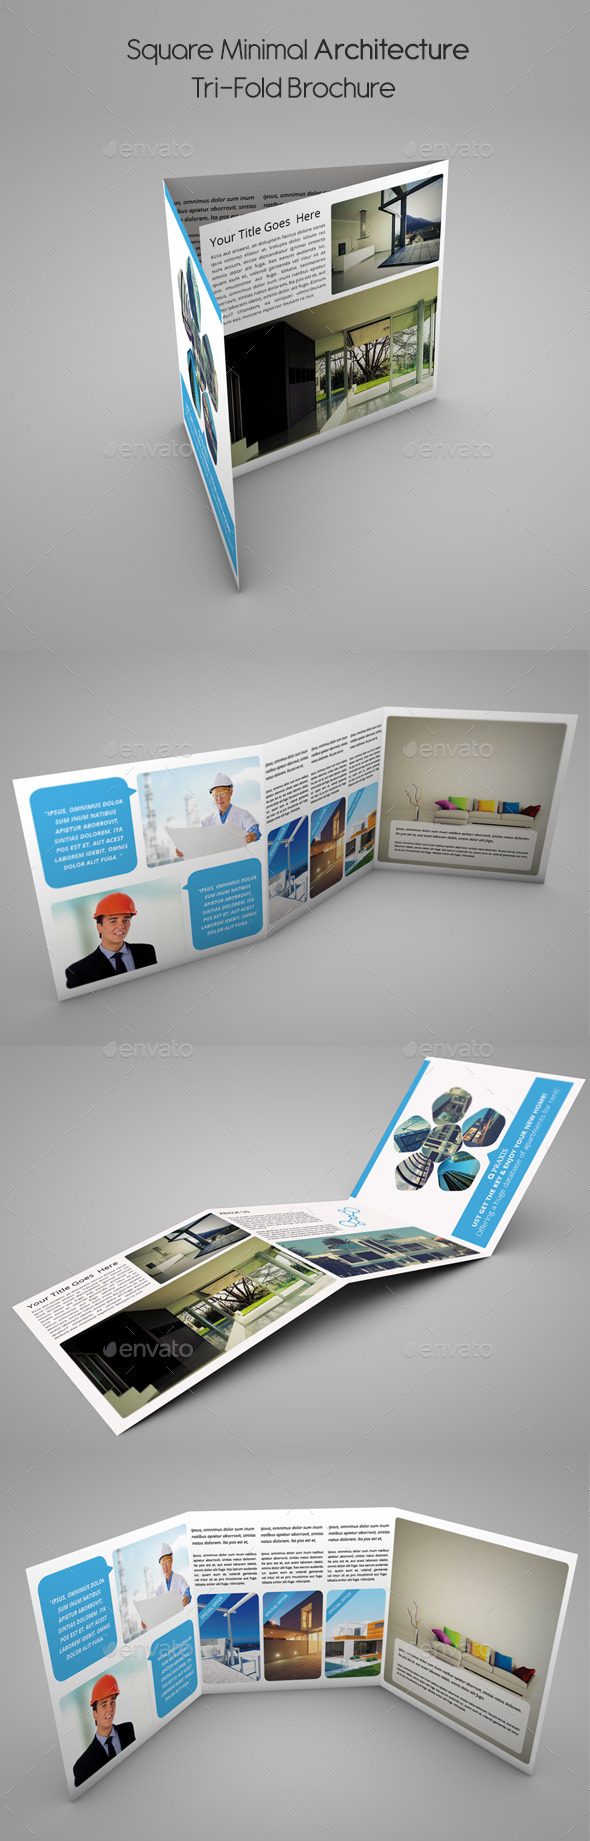 GraphicRiver Square Minimal Architecture Tri-Fold Brochure 10457825